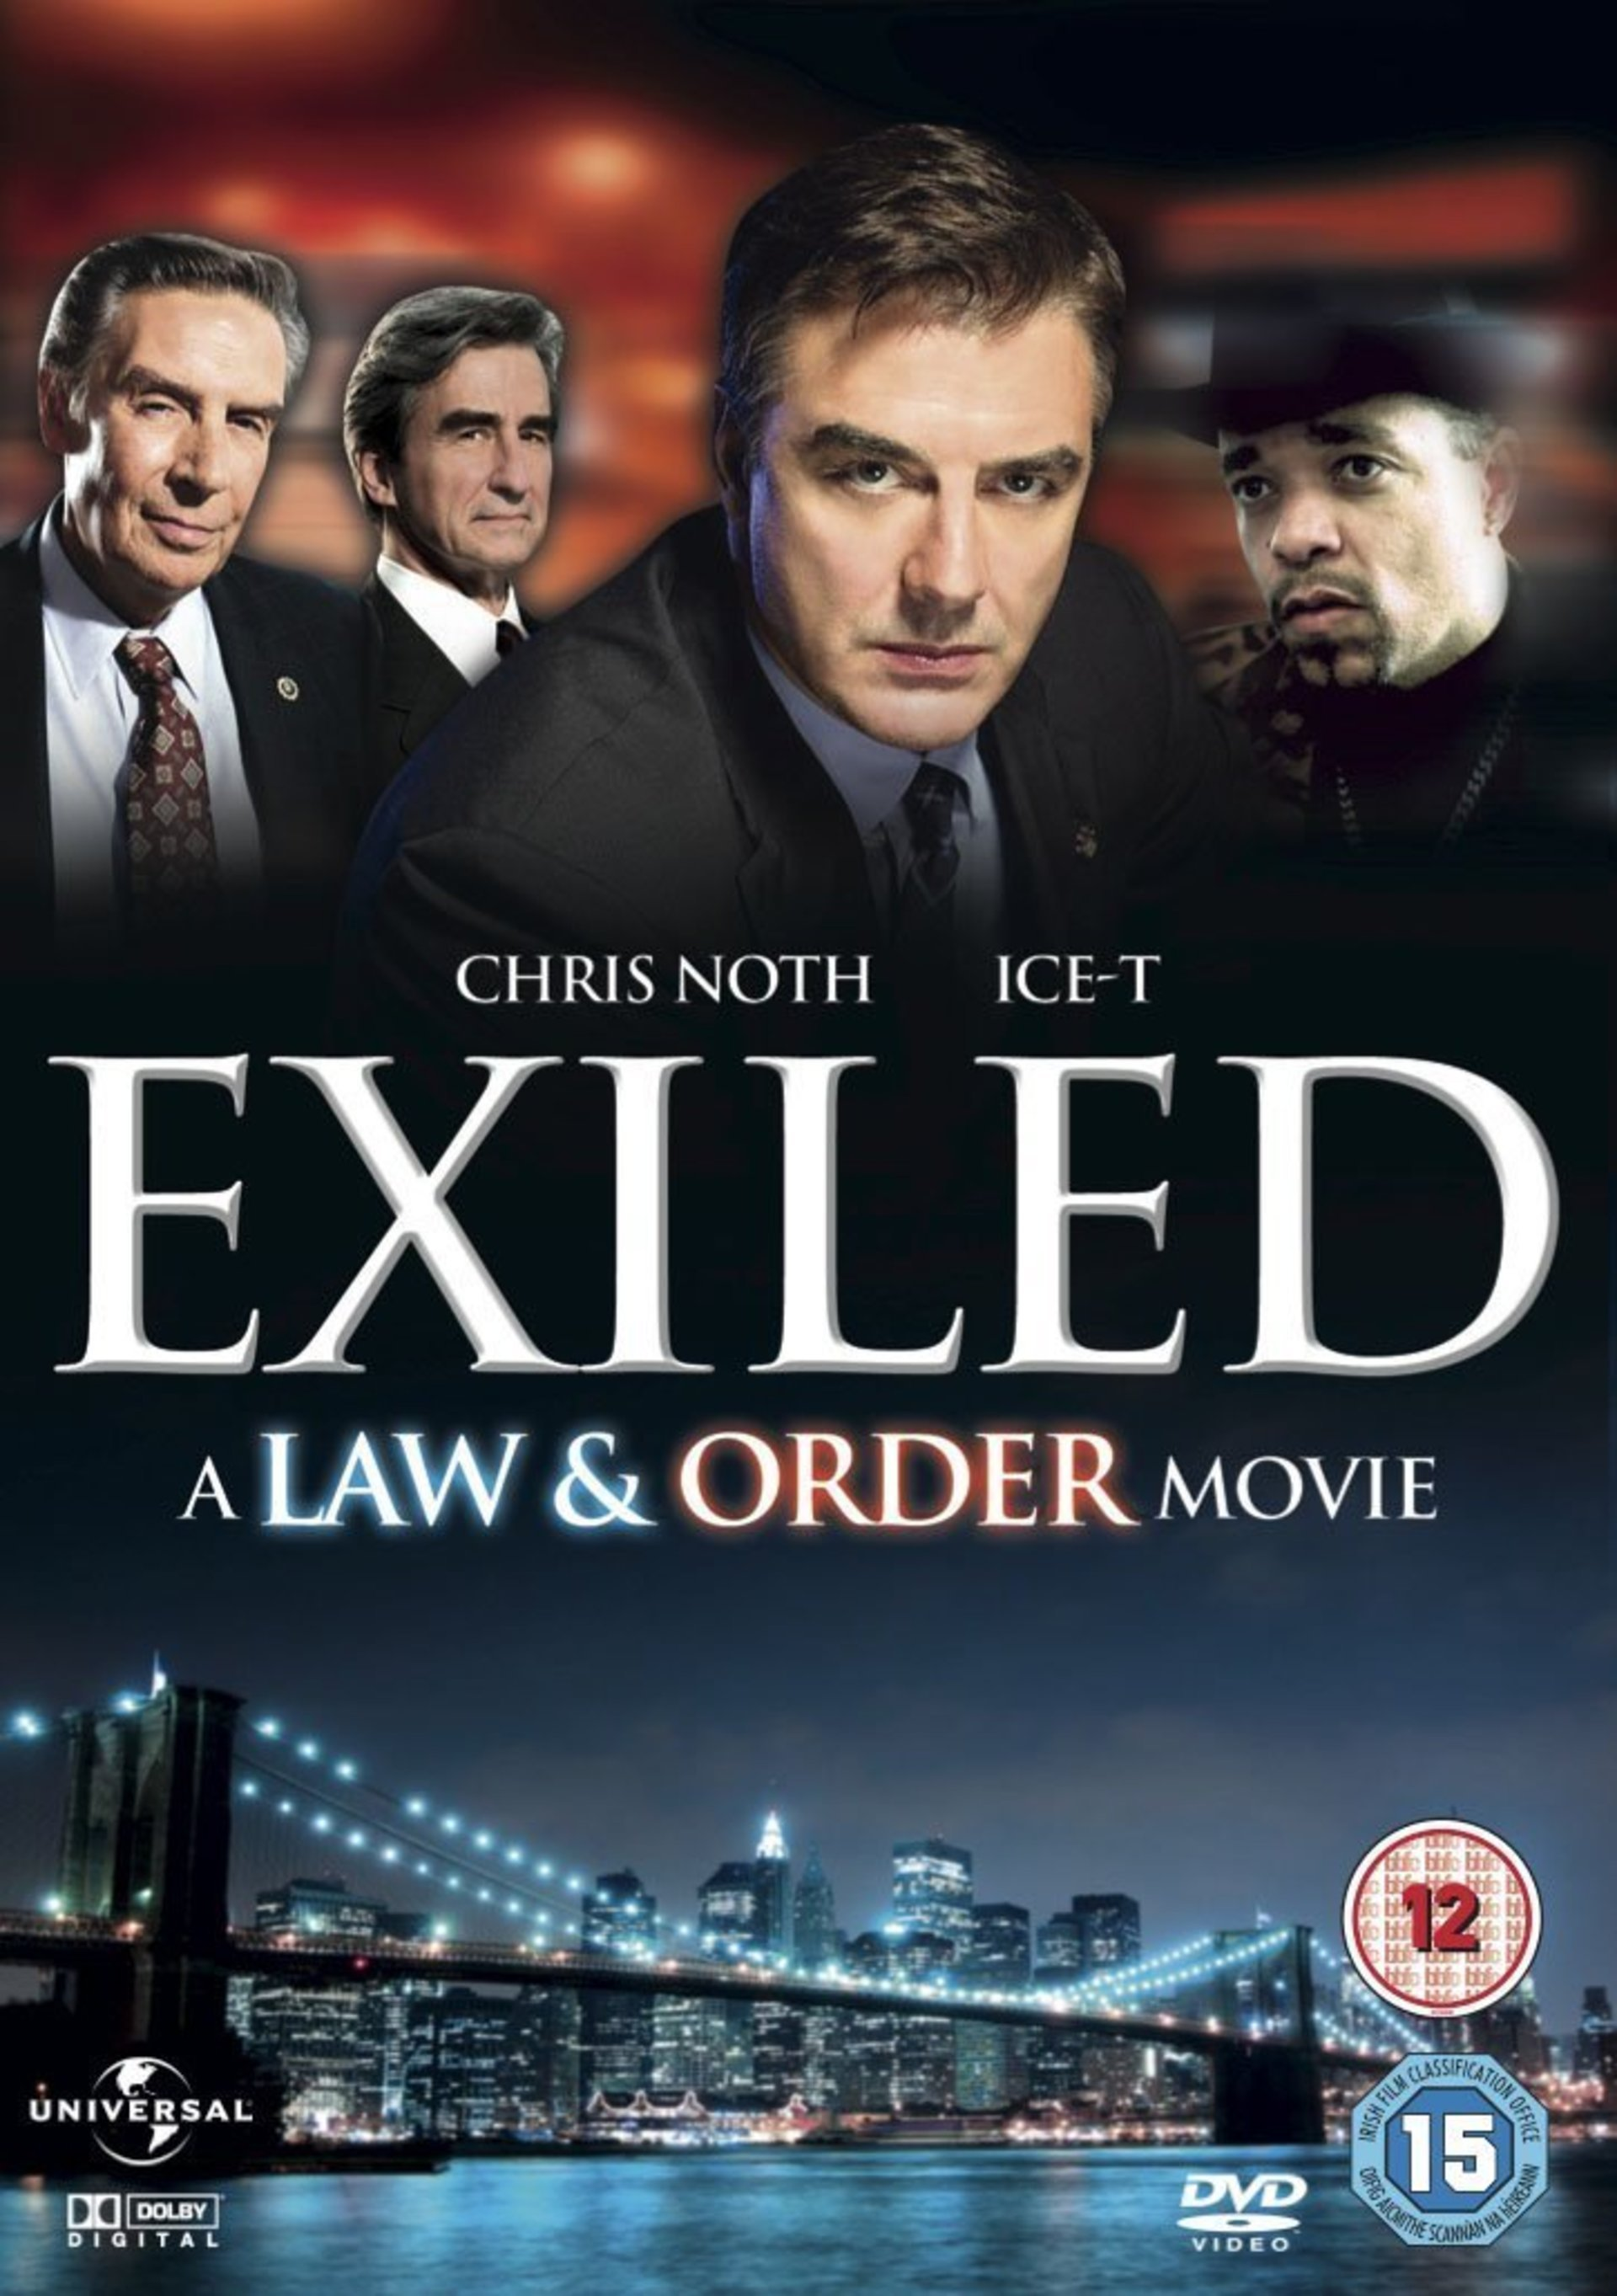 Ice-T, Jerry Orbach, Sam Waterston, and Chris Noth in Exiled (1998)